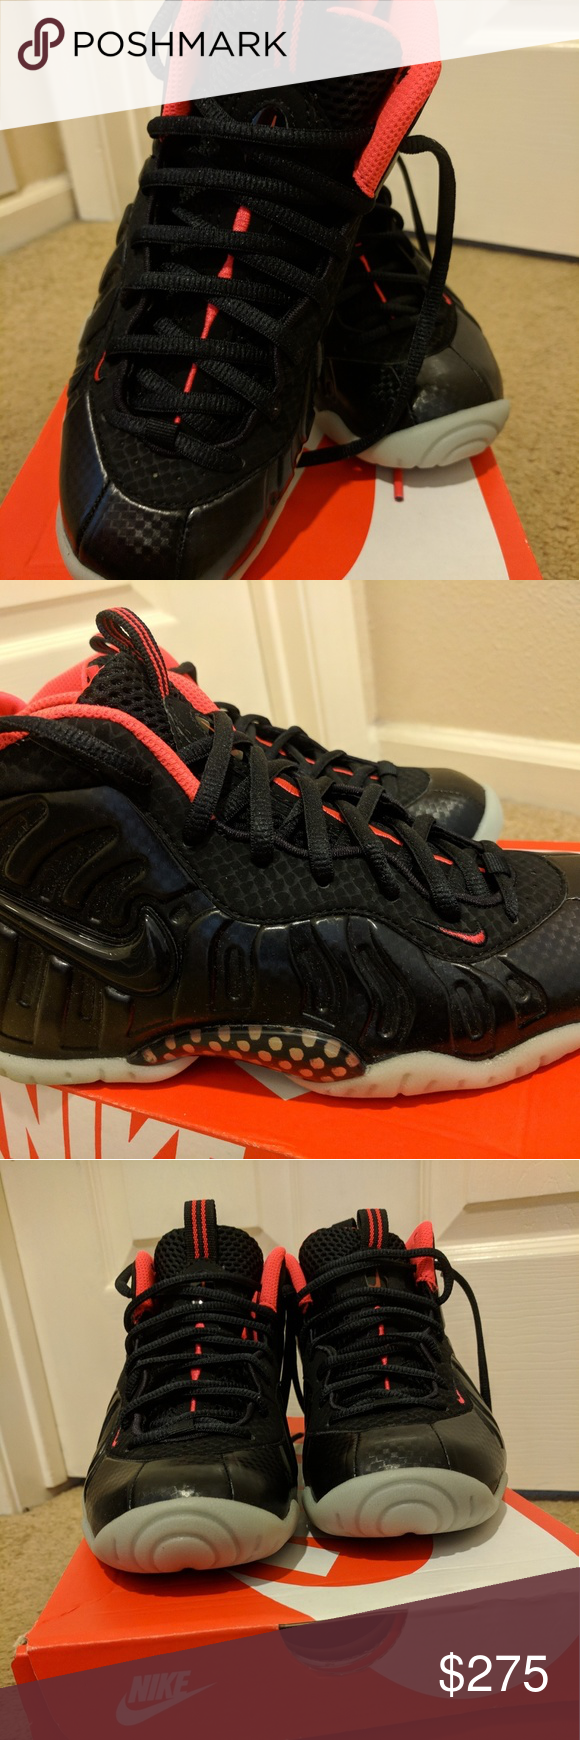 c475691c95a79 ... closeout nike foamposite pro yeezy rare youth size brand new in box nike  little posite pro